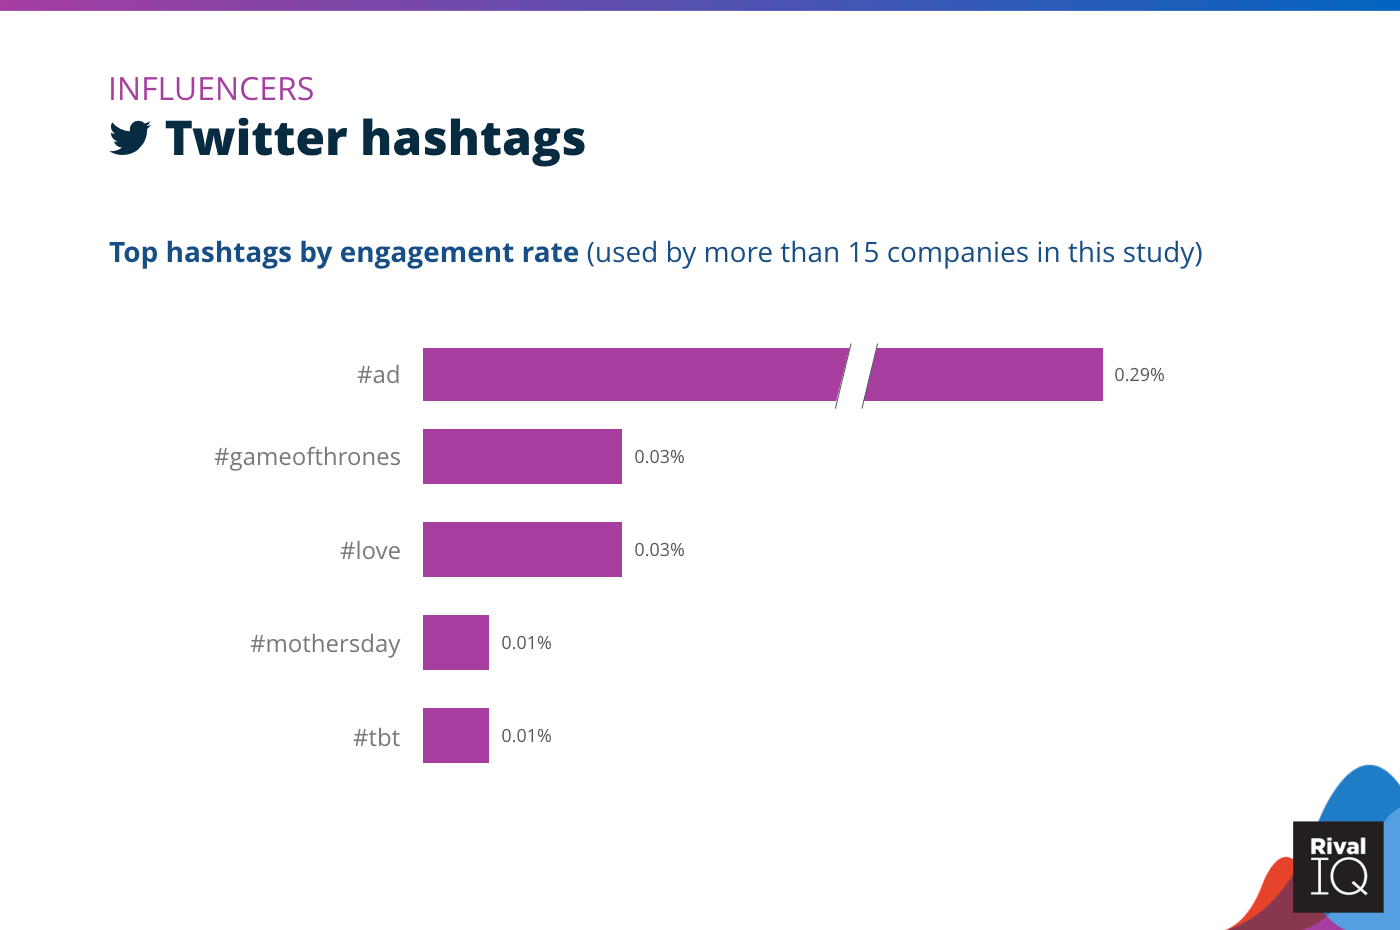 Chart of Top Twitter hashtags by engagement rate, Influencers